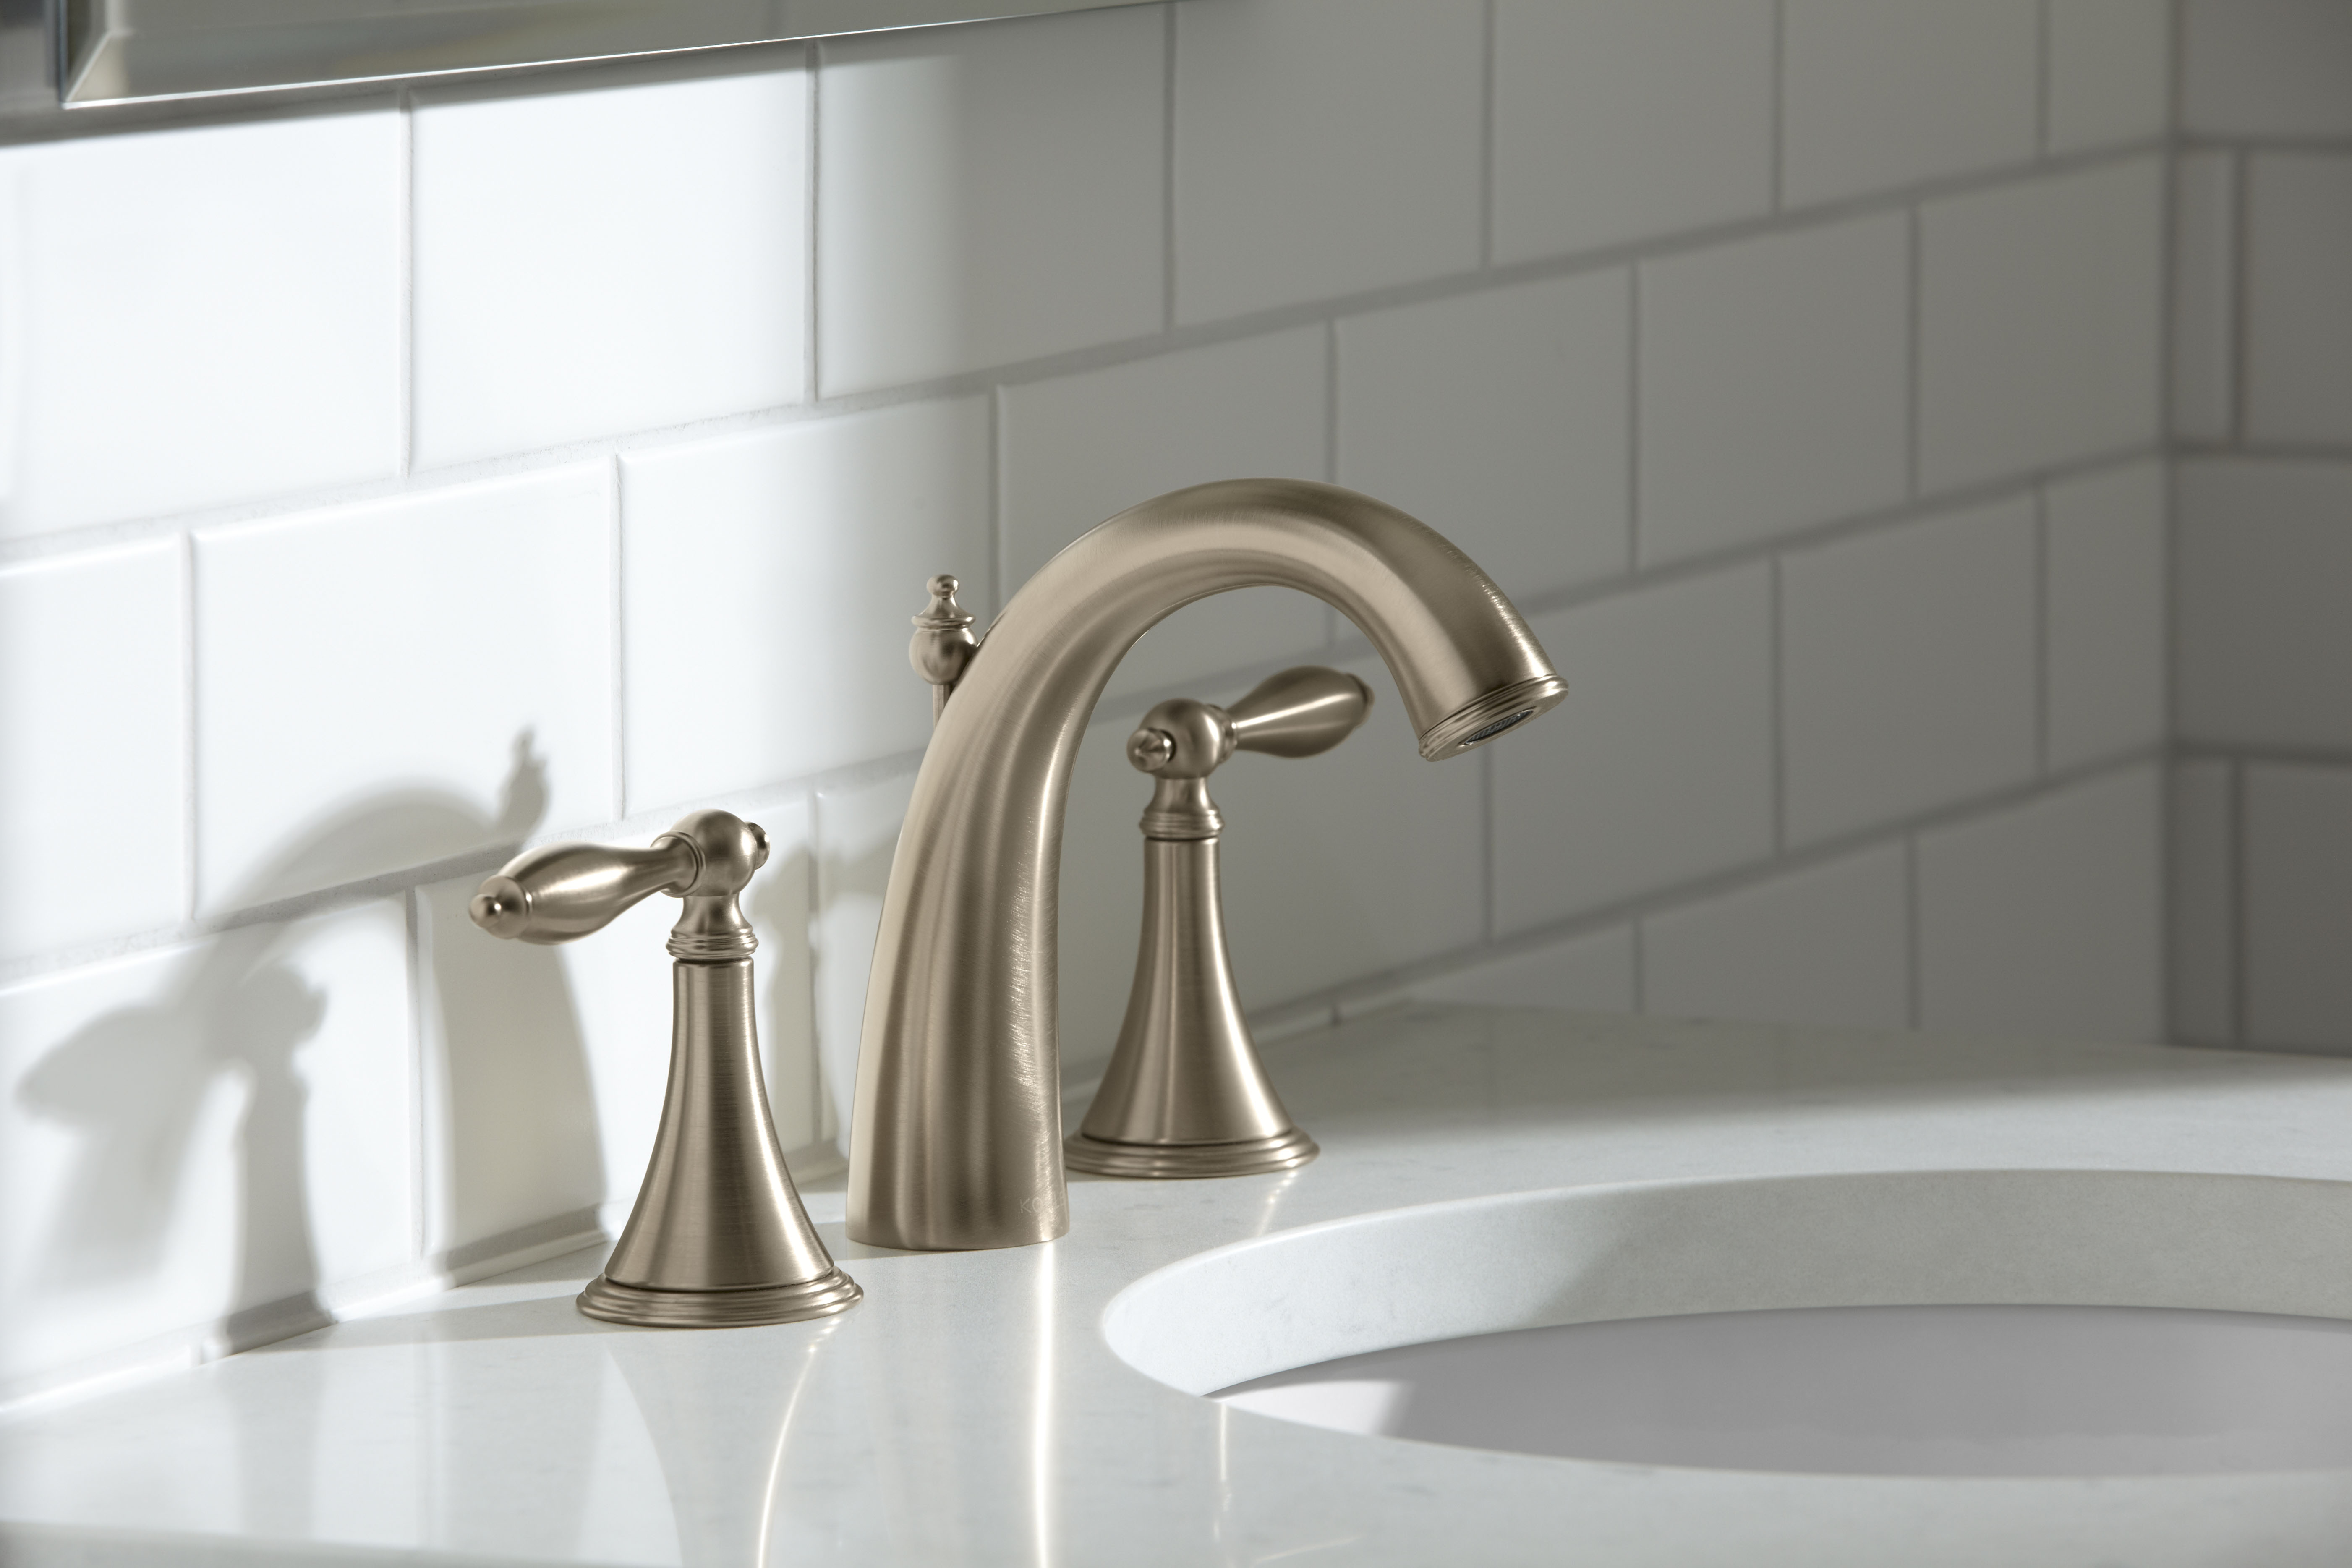 Verticyl Sink     Finial Traditional Faucet     With its subtle tones, a Vibrant Brushed Bronze finish can soften the refined details of a traditional faucet and complement modern environments.